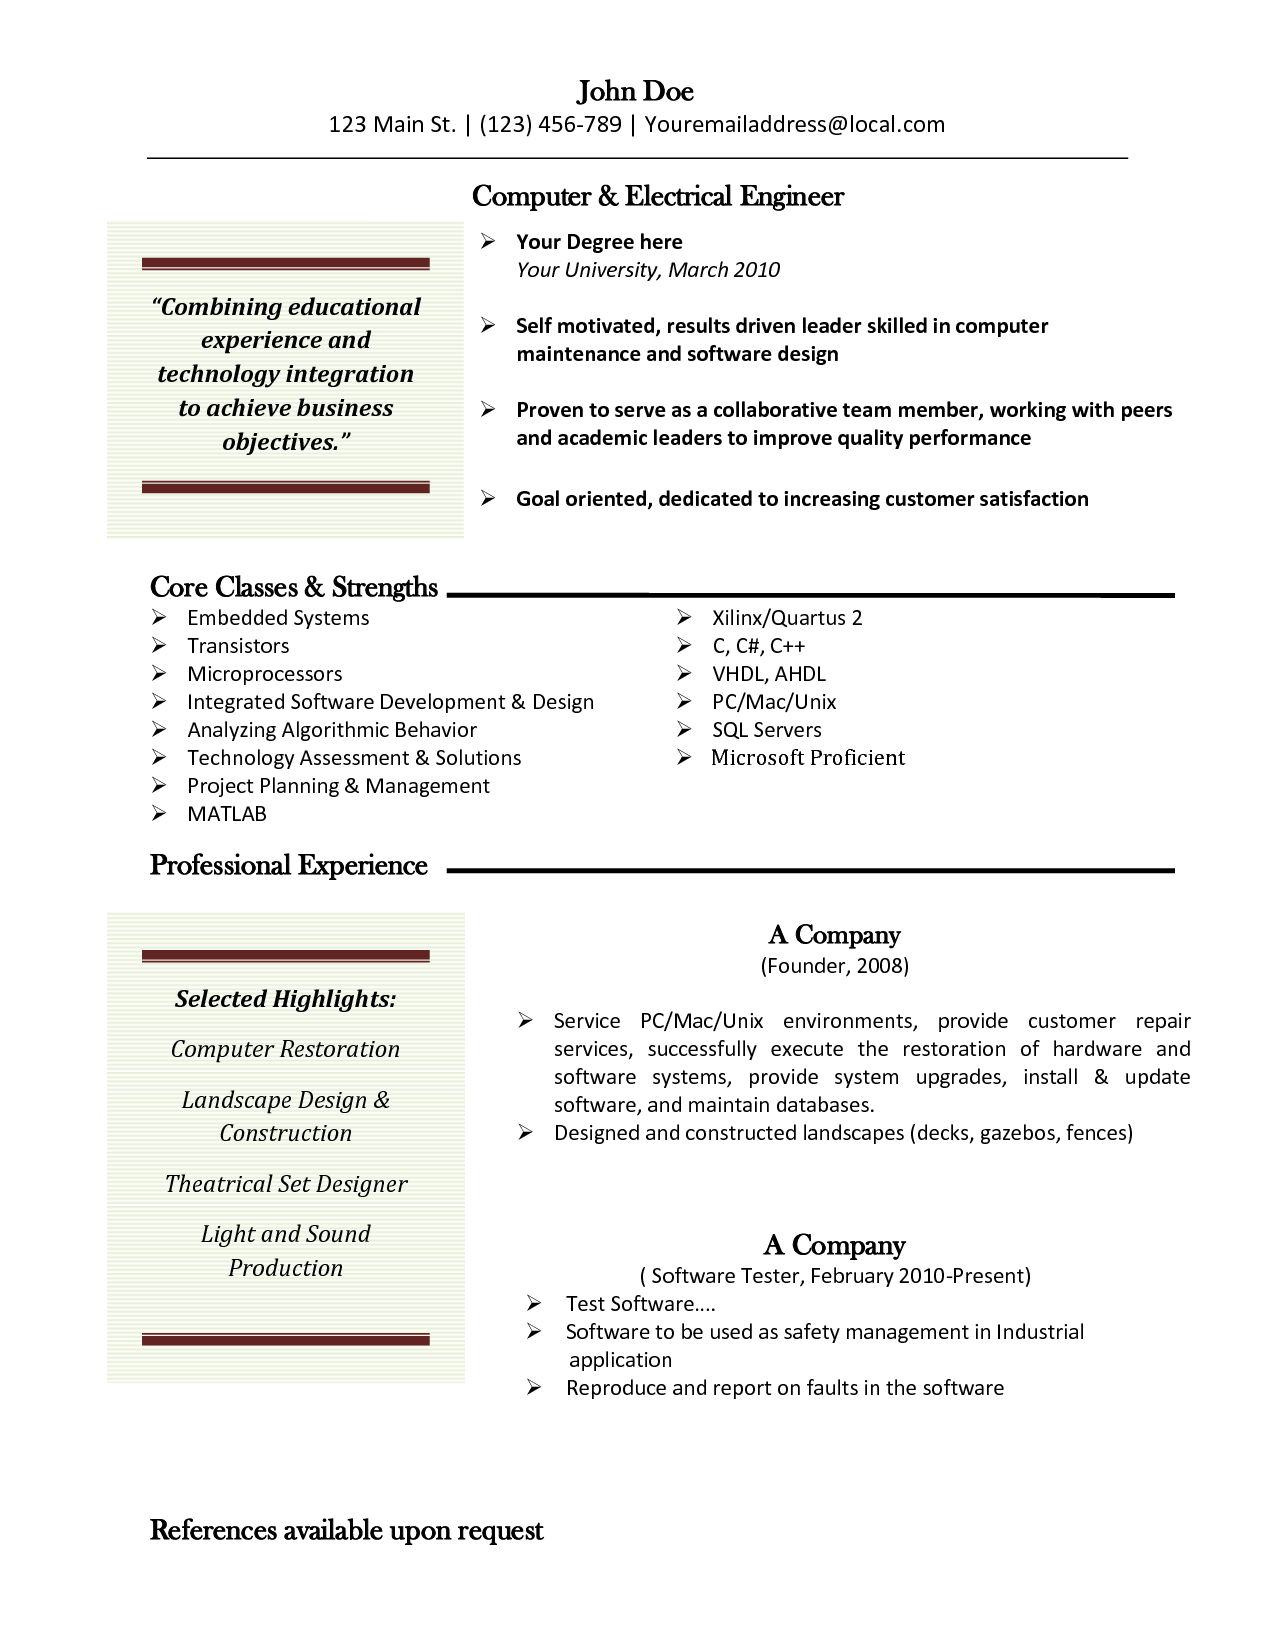 Computer Engineer Resume College Student Resume Best Template Gallery  Httpwww